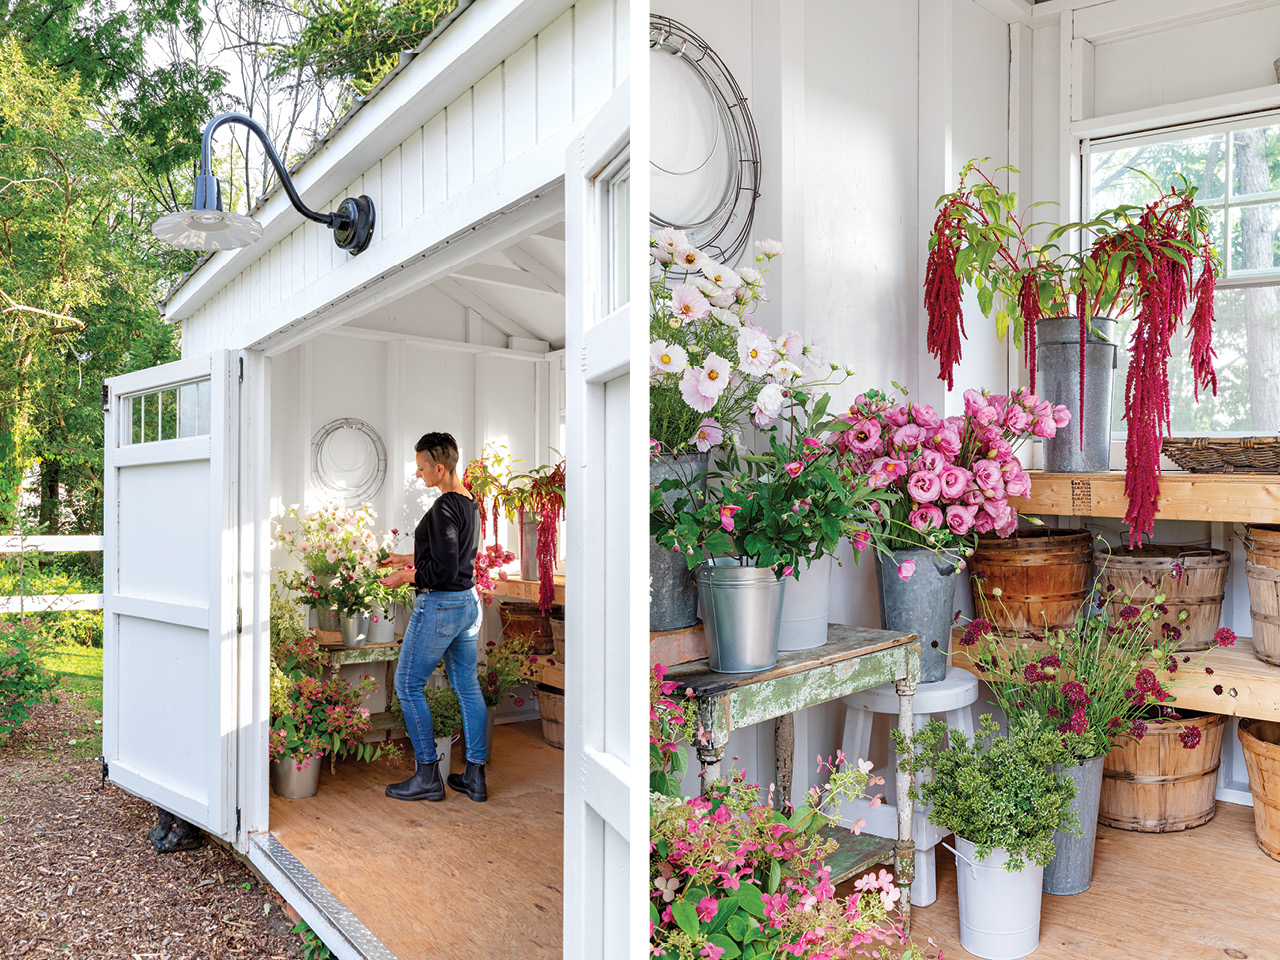 A photo of floral designer Cynthia Zamaria's cutting garden and potting shed.